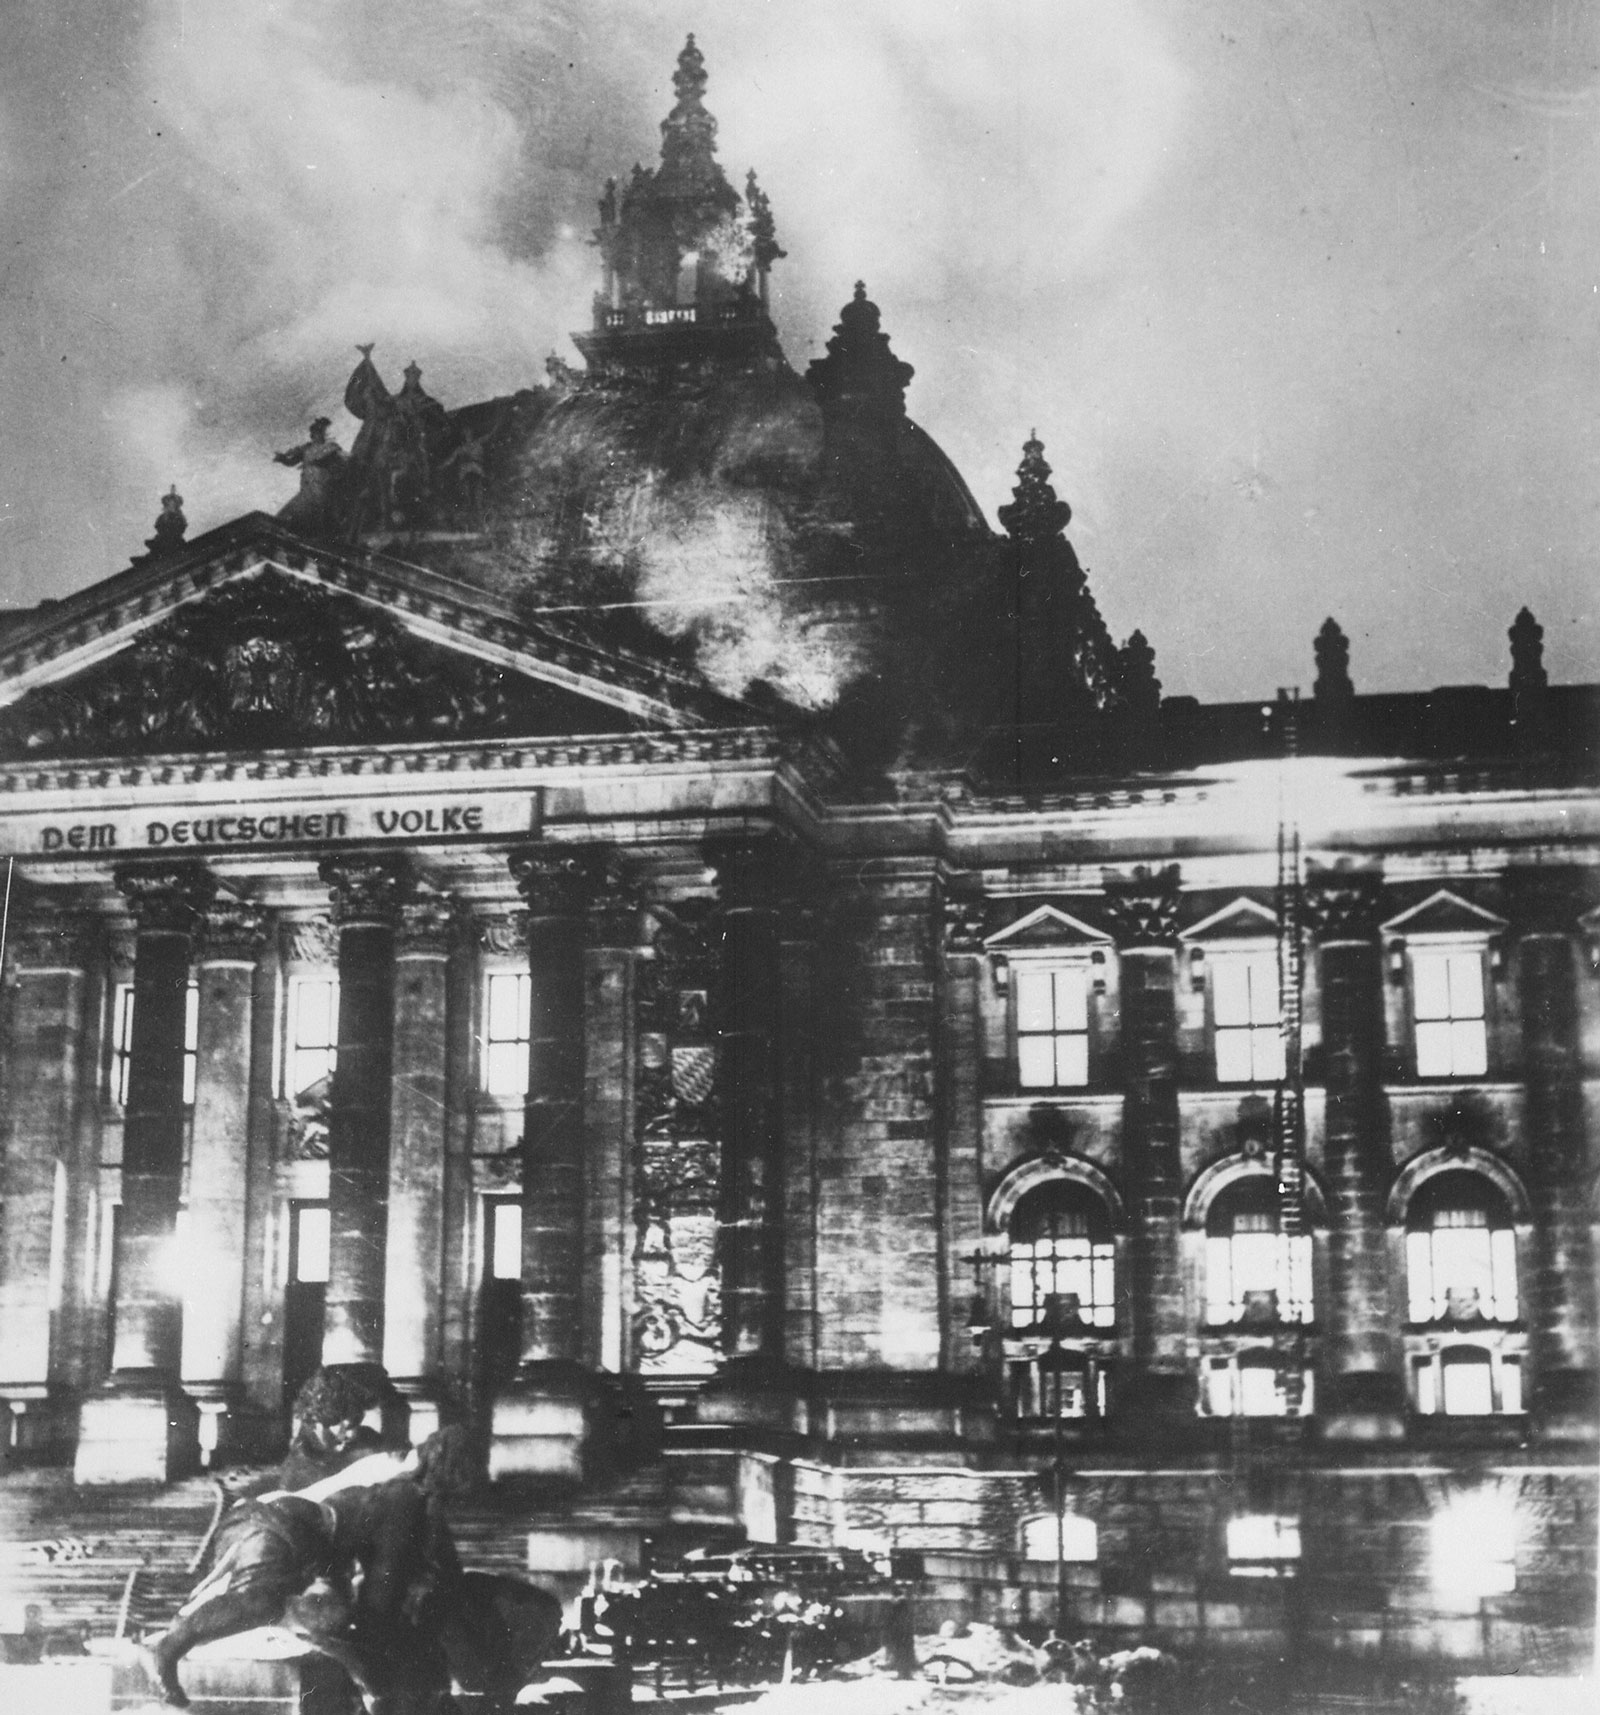 The Reichstag during the fire, Berlin, February 1933